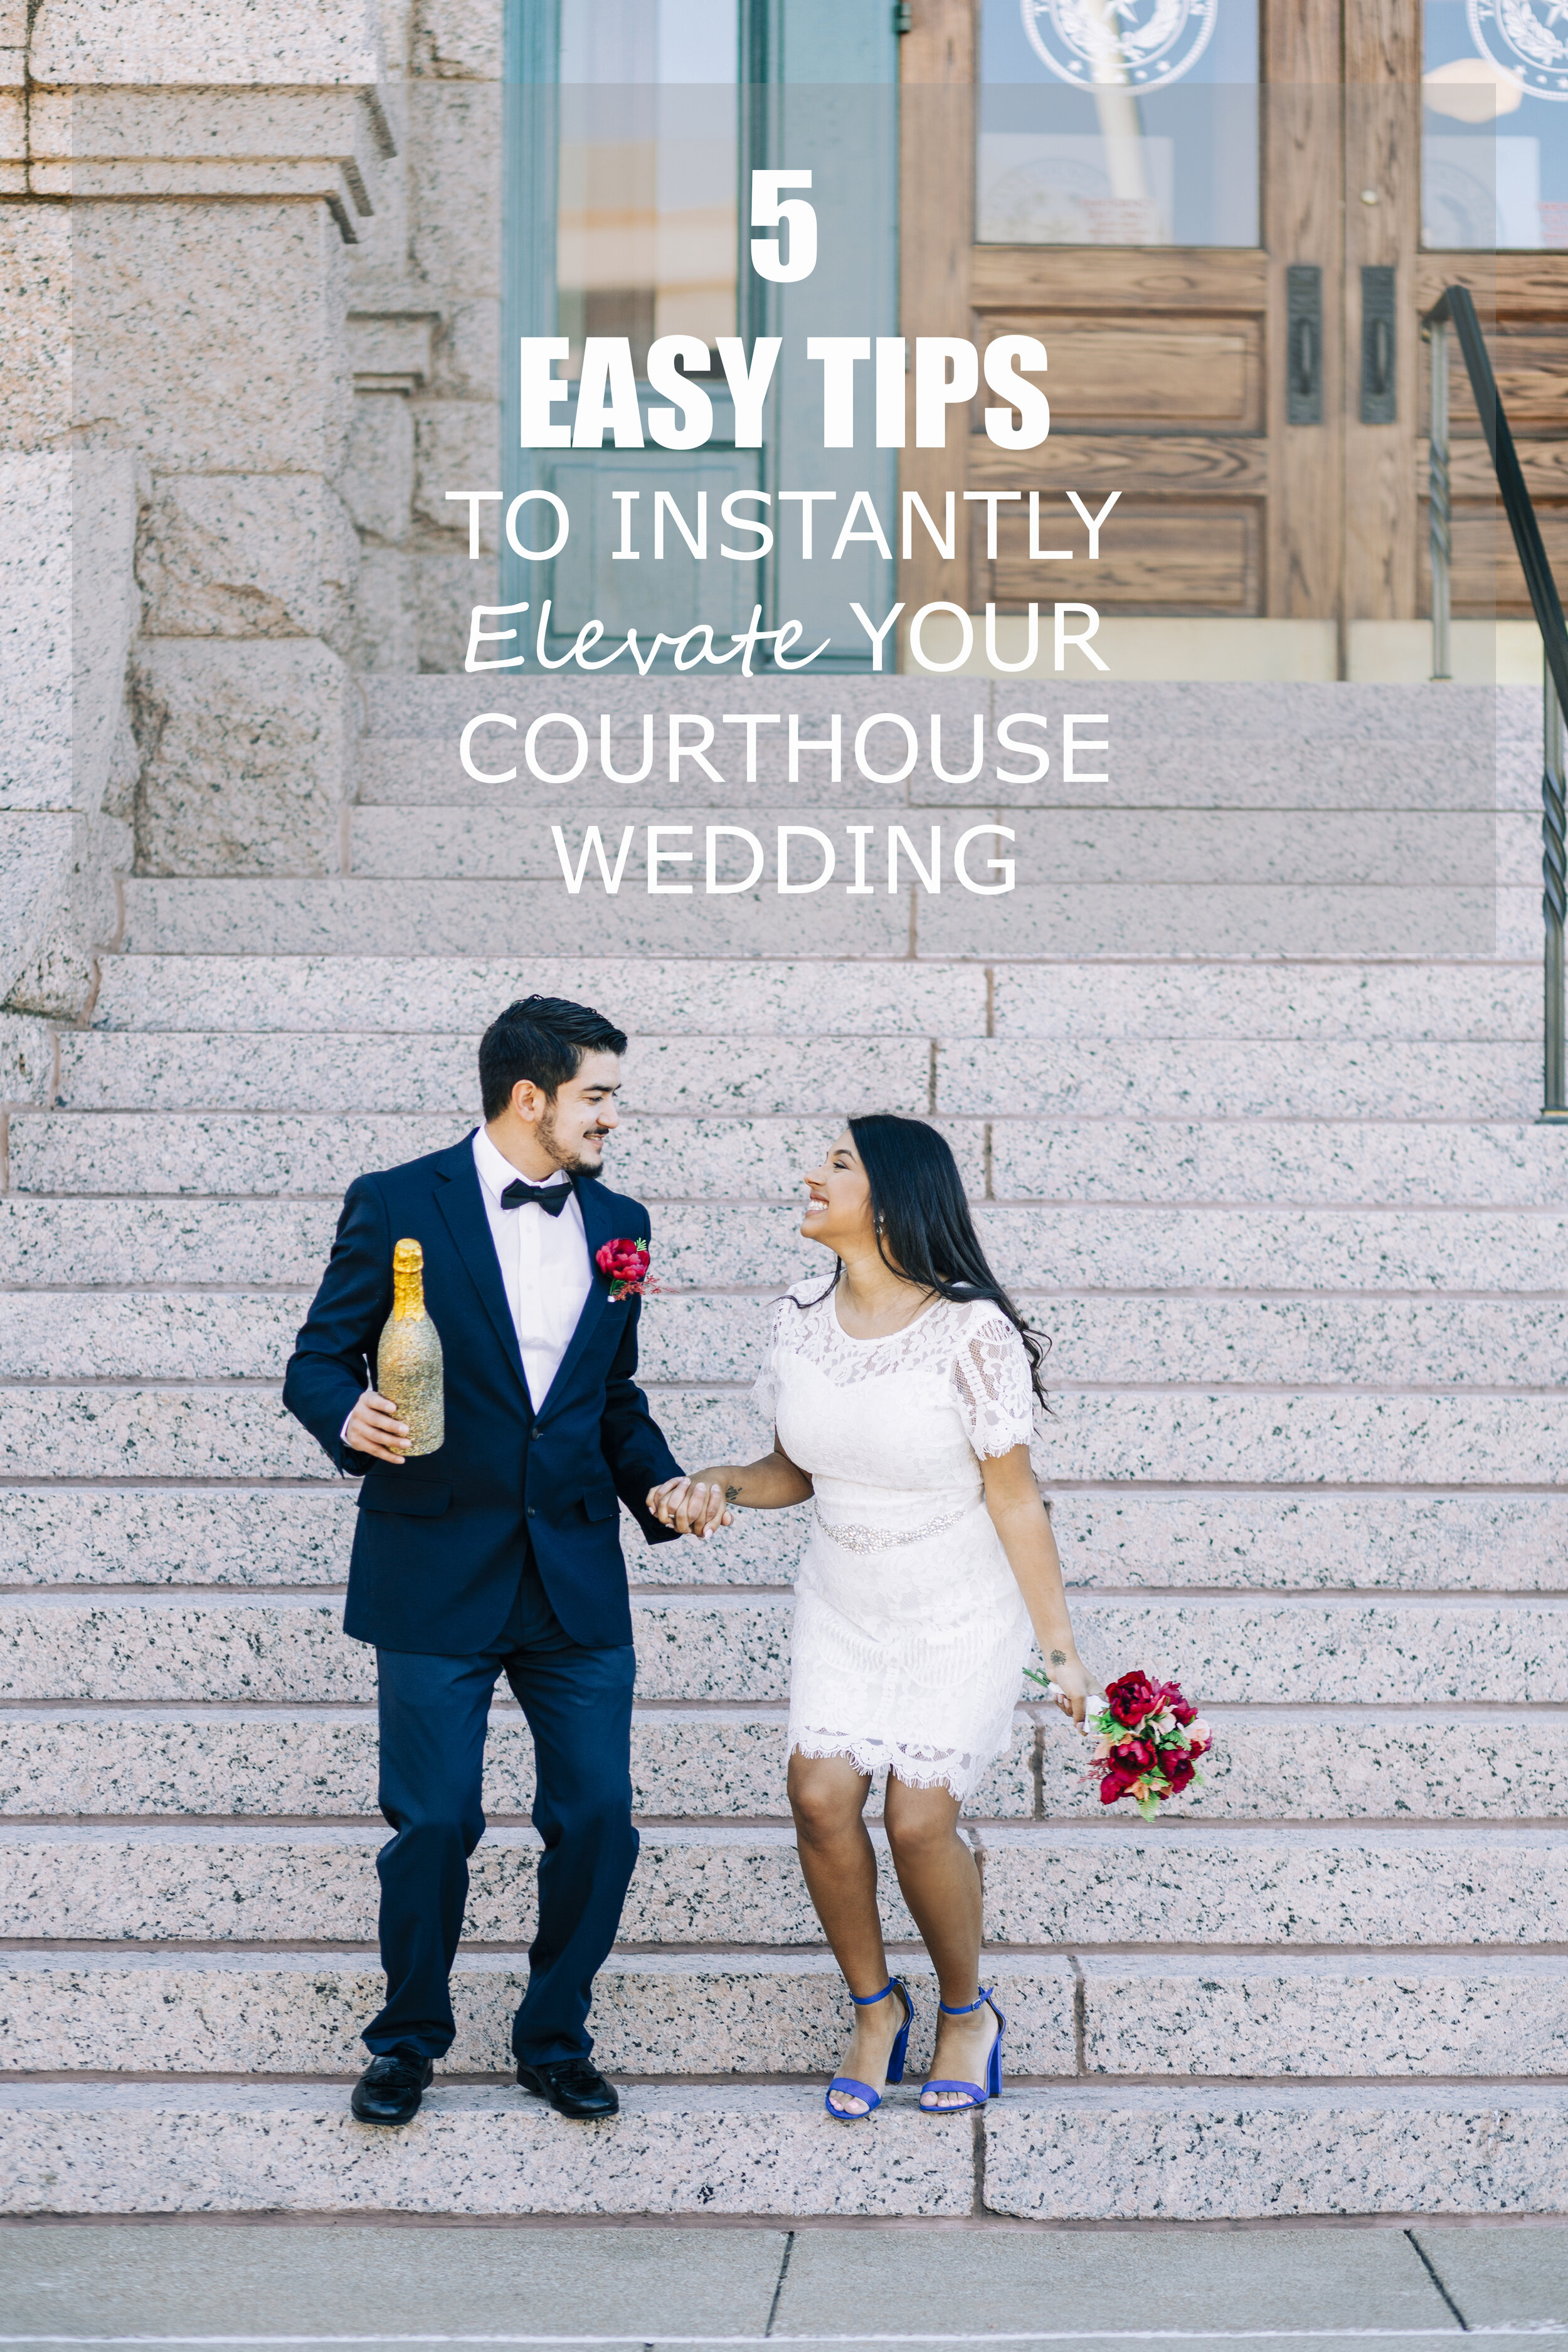 5 Easy Tips To Instantly Elevate Your Courthouse Wedding Malia Maureen Photography